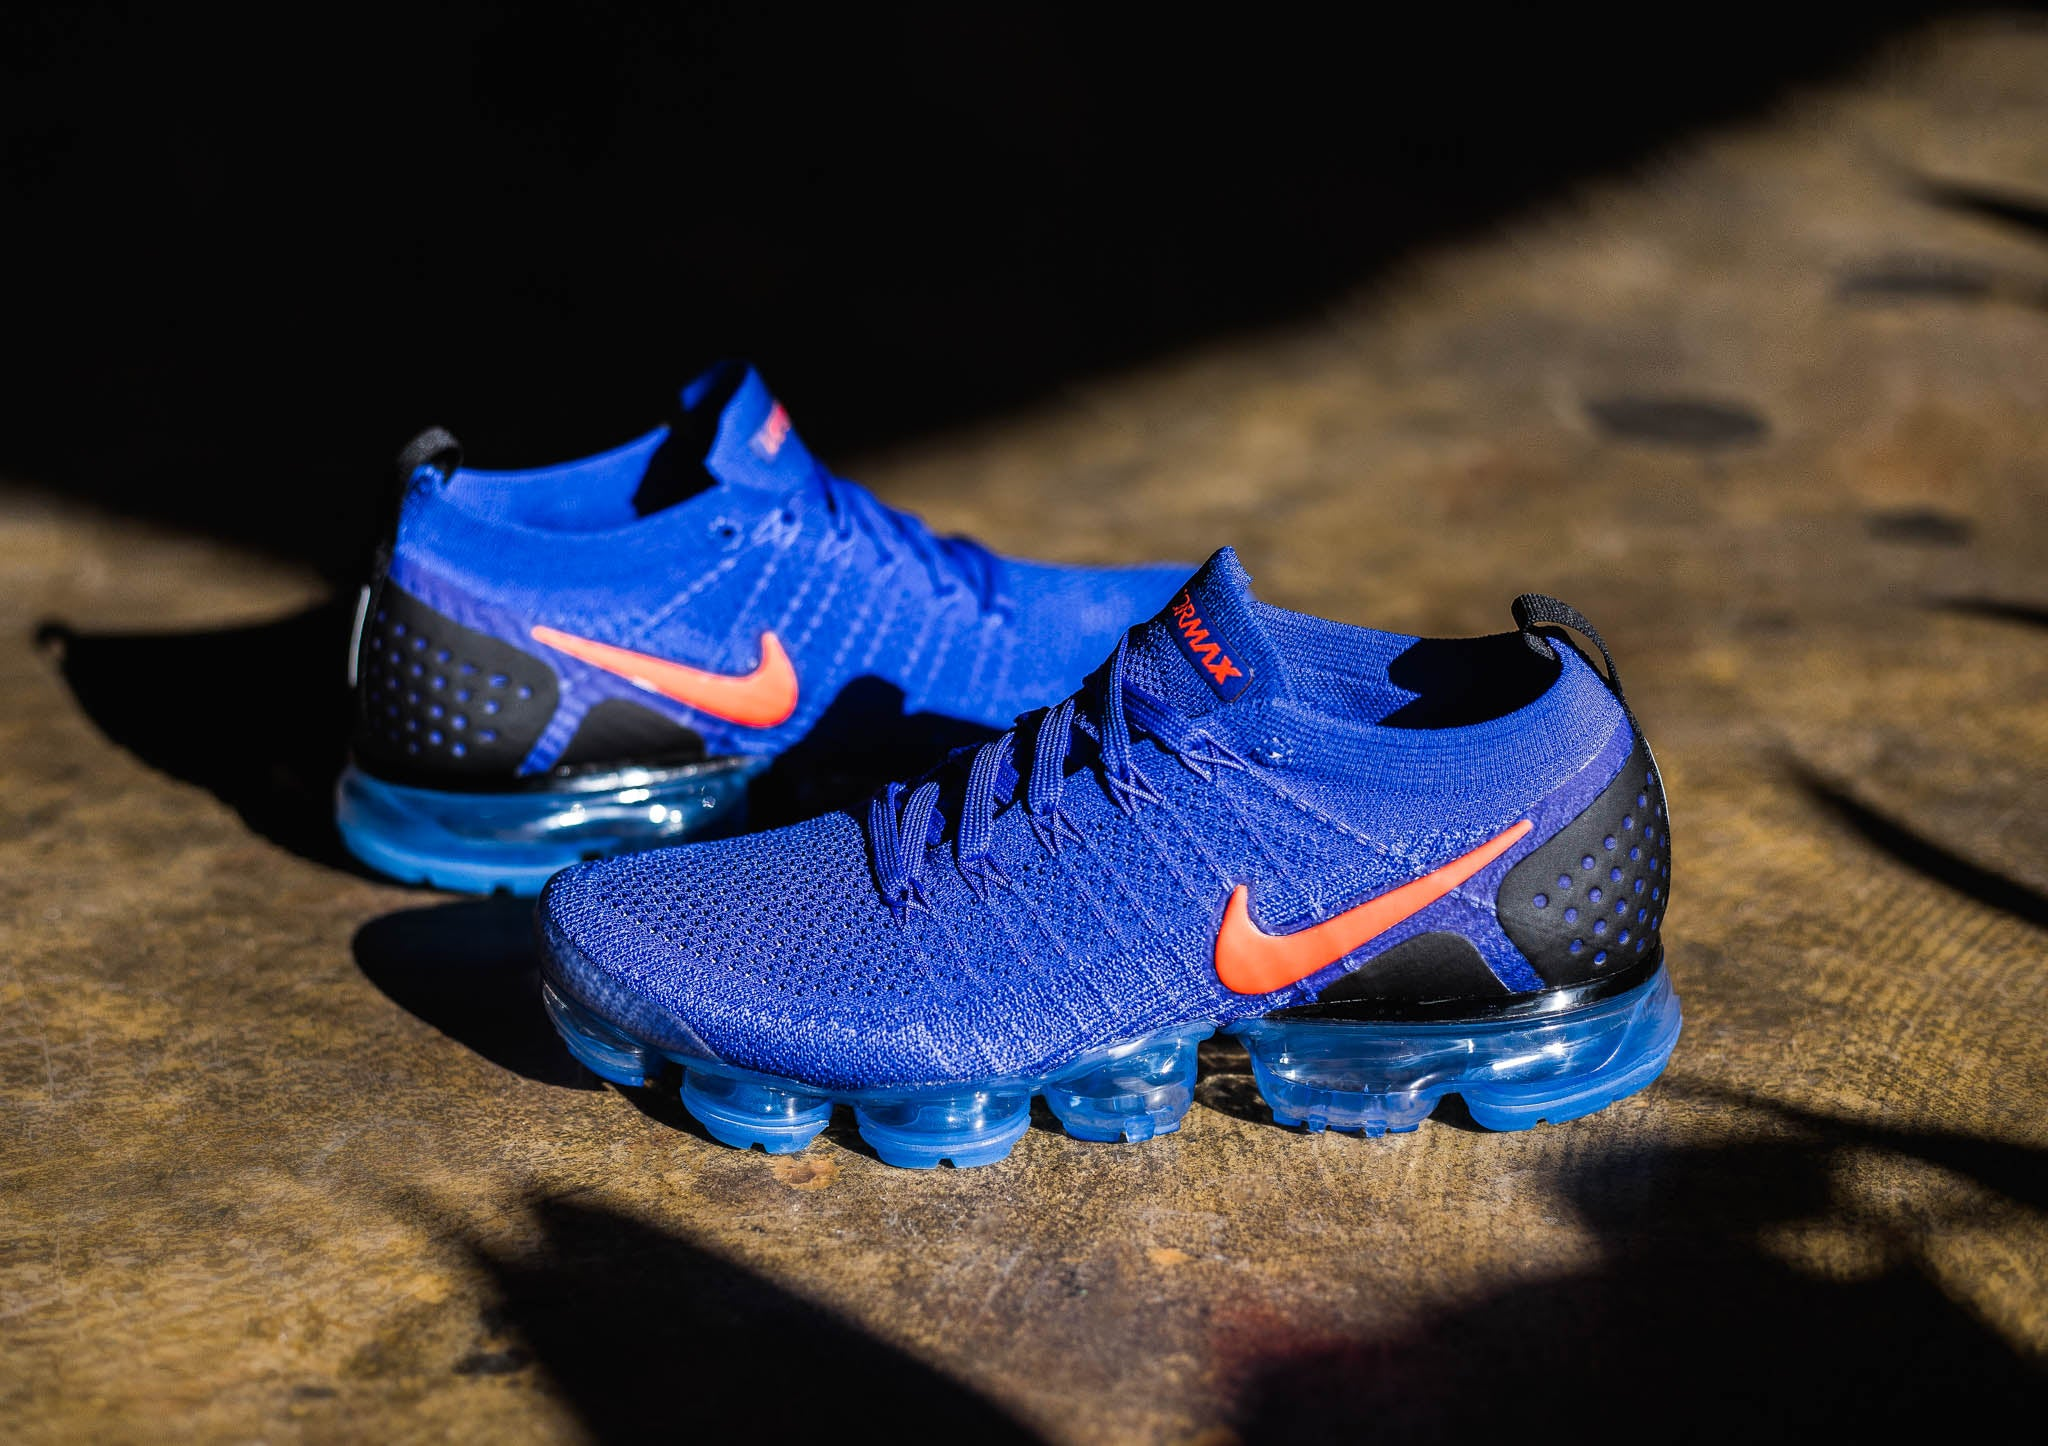 reputable site 83cfd b0019 Air Vapormax Flyknit 2 'Racer Blue' 05.03.18 – Capsule Online